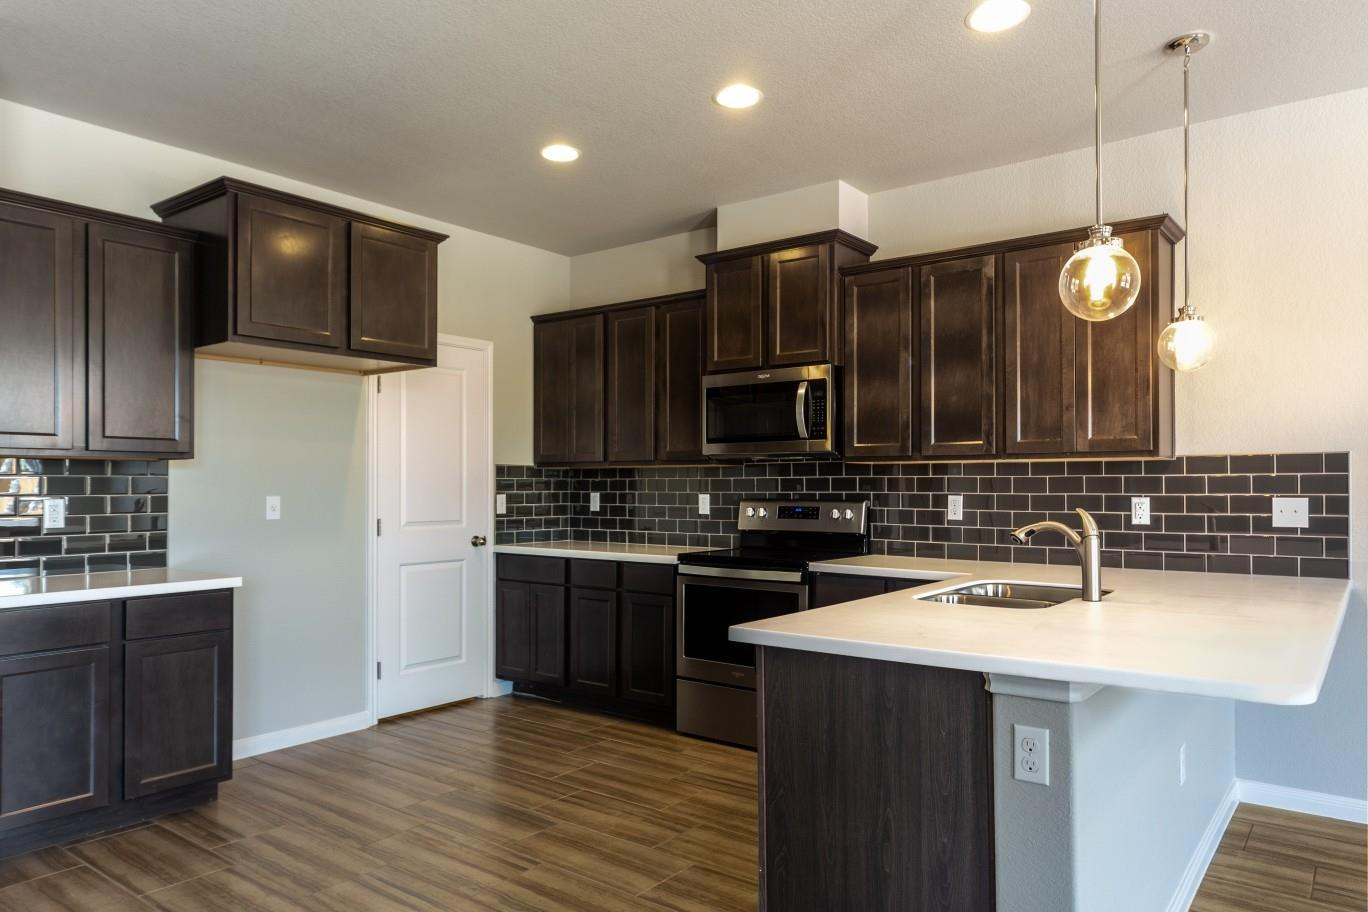 Kitchen featured in the Ridley By Hogan Homes in Corpus Christi, TX